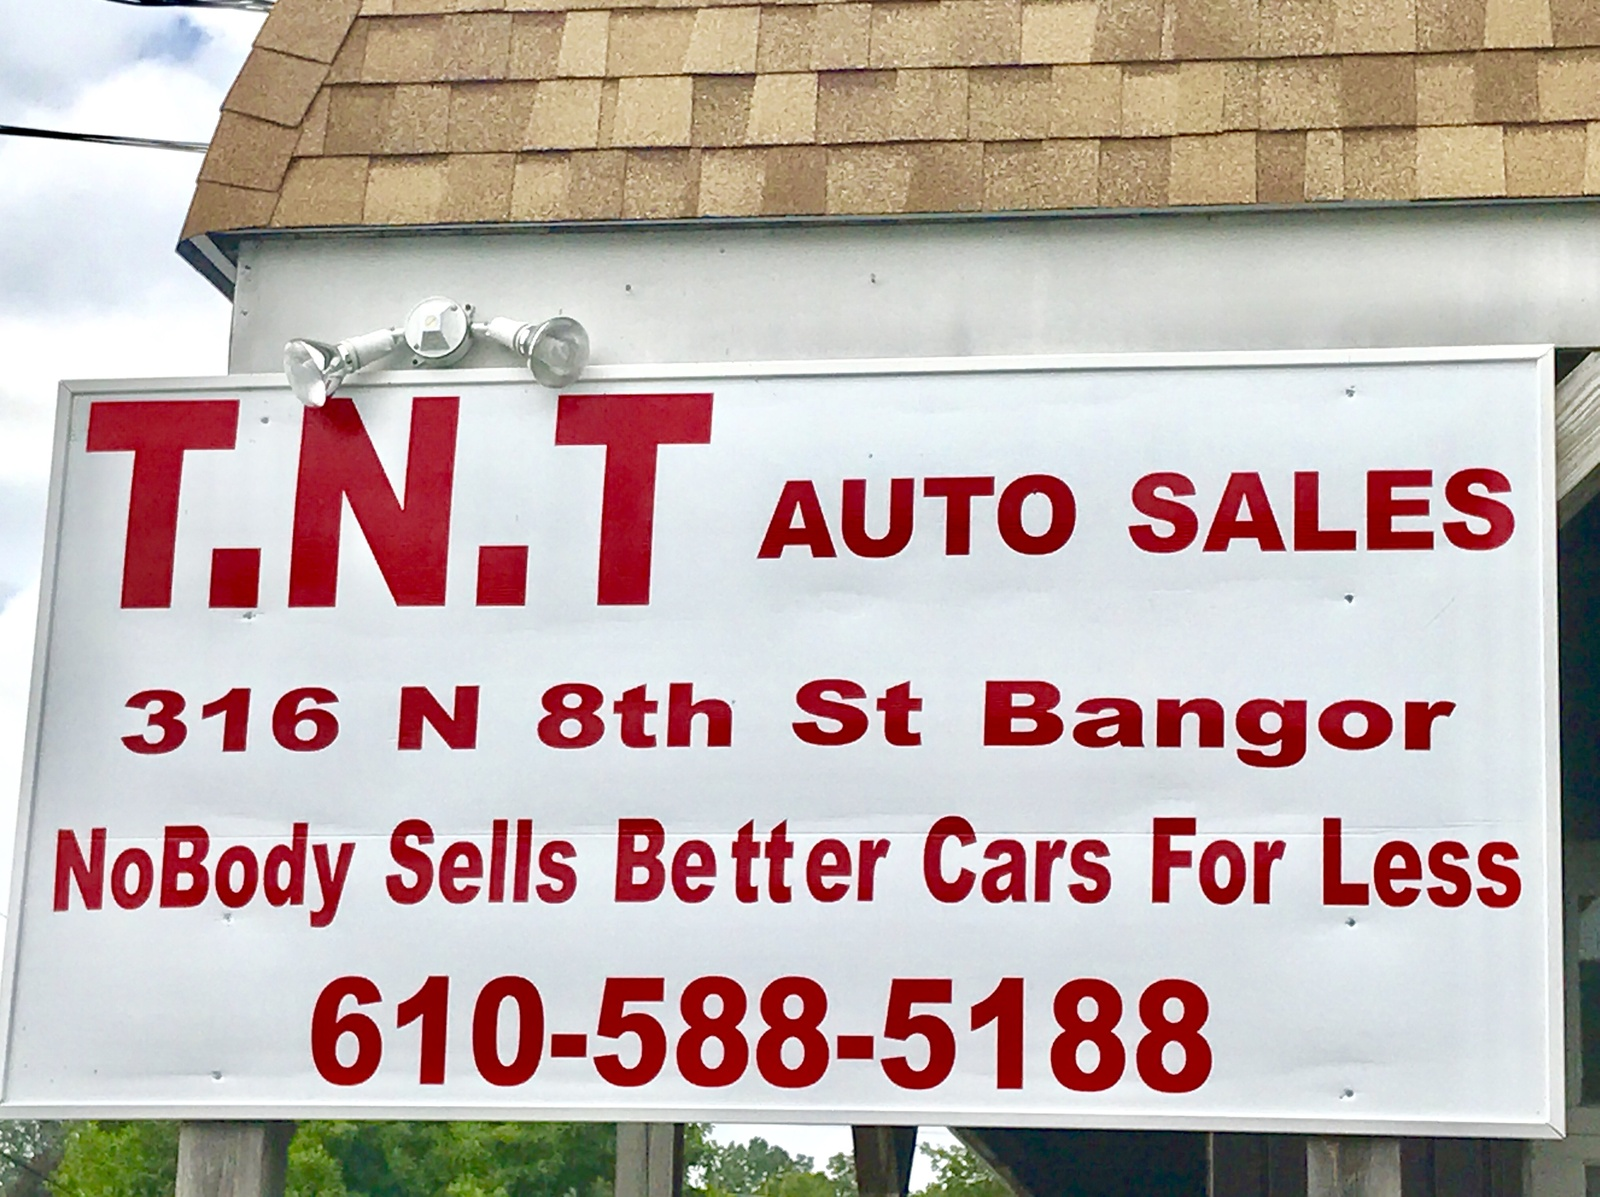 Tnt Auto Sales >> Tnt Auto Sales Bangor Pa Read Consumer Reviews Browse Used And